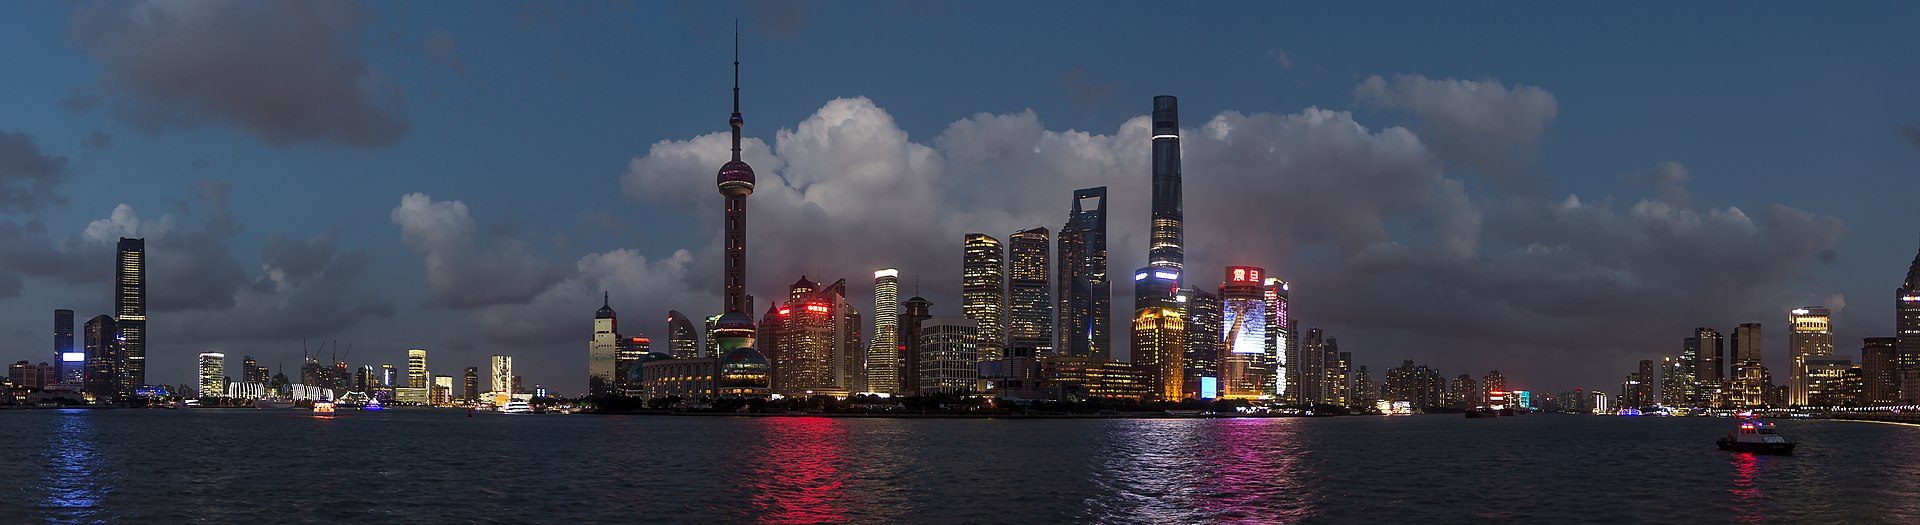 Shanghai to build hydrogen energy harbor & create industrial